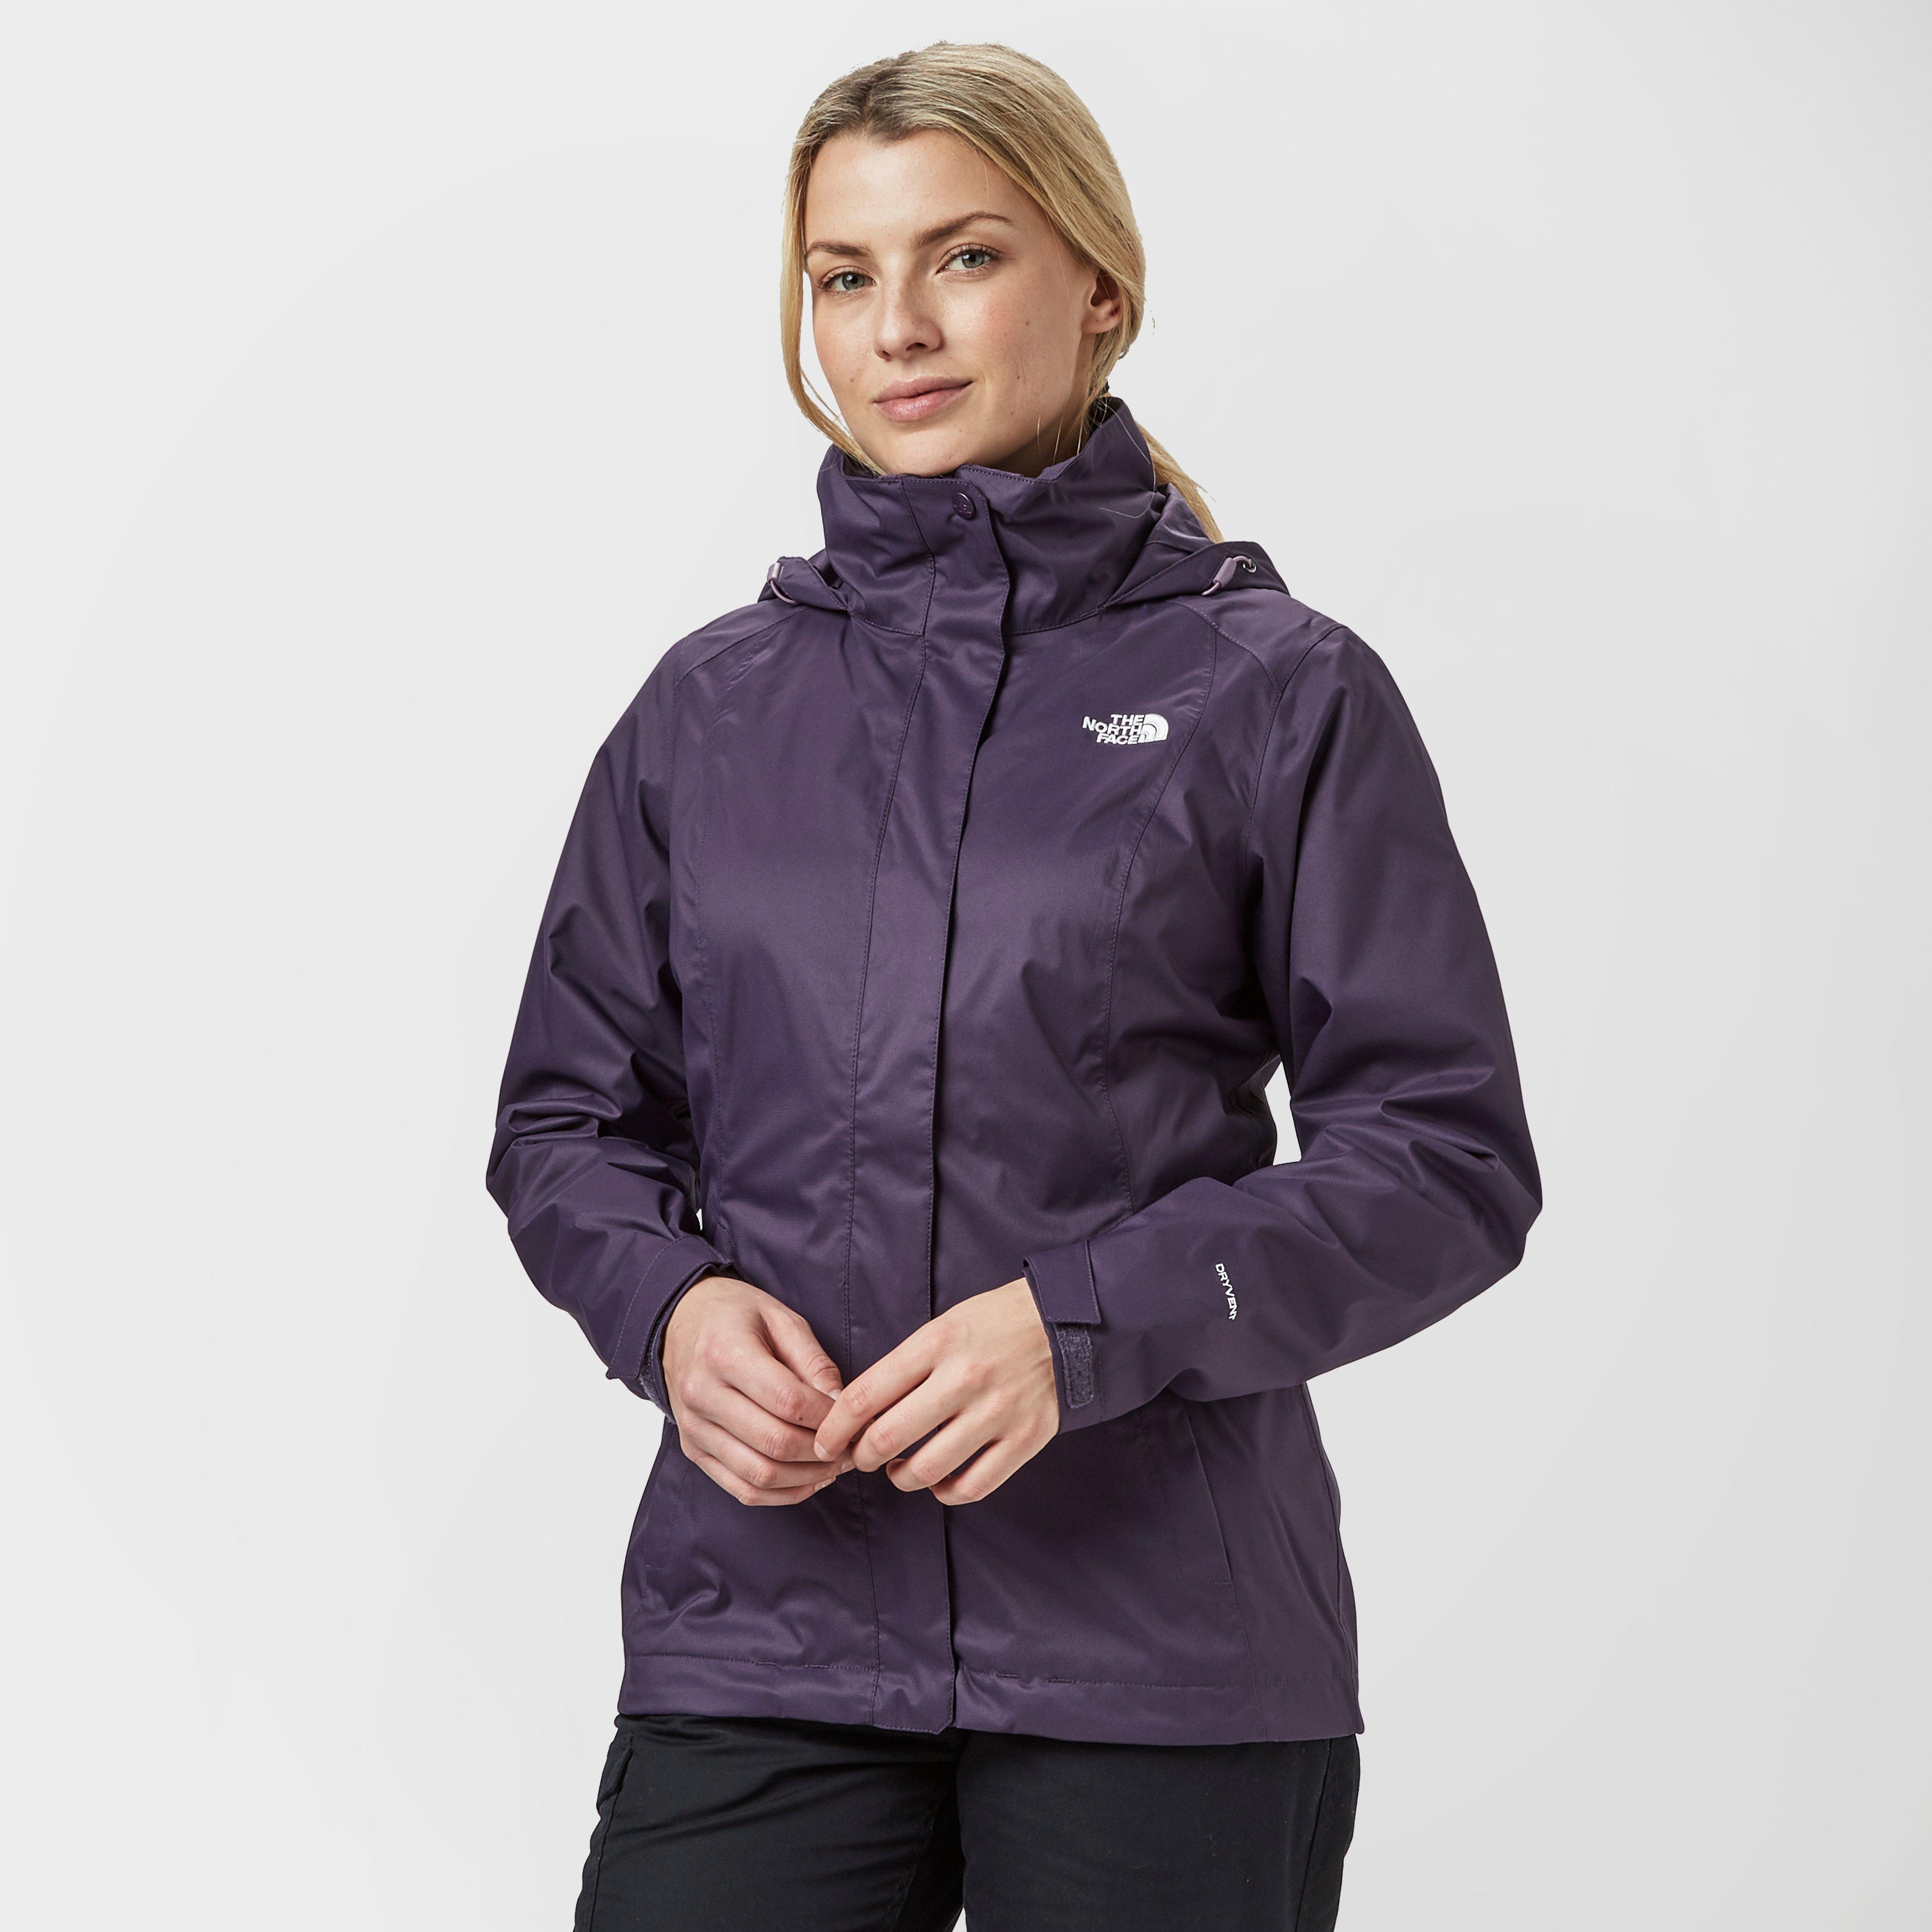 7894954dc2 The North Face Women s Evolve II Triclimate 3-in-1 Jacket